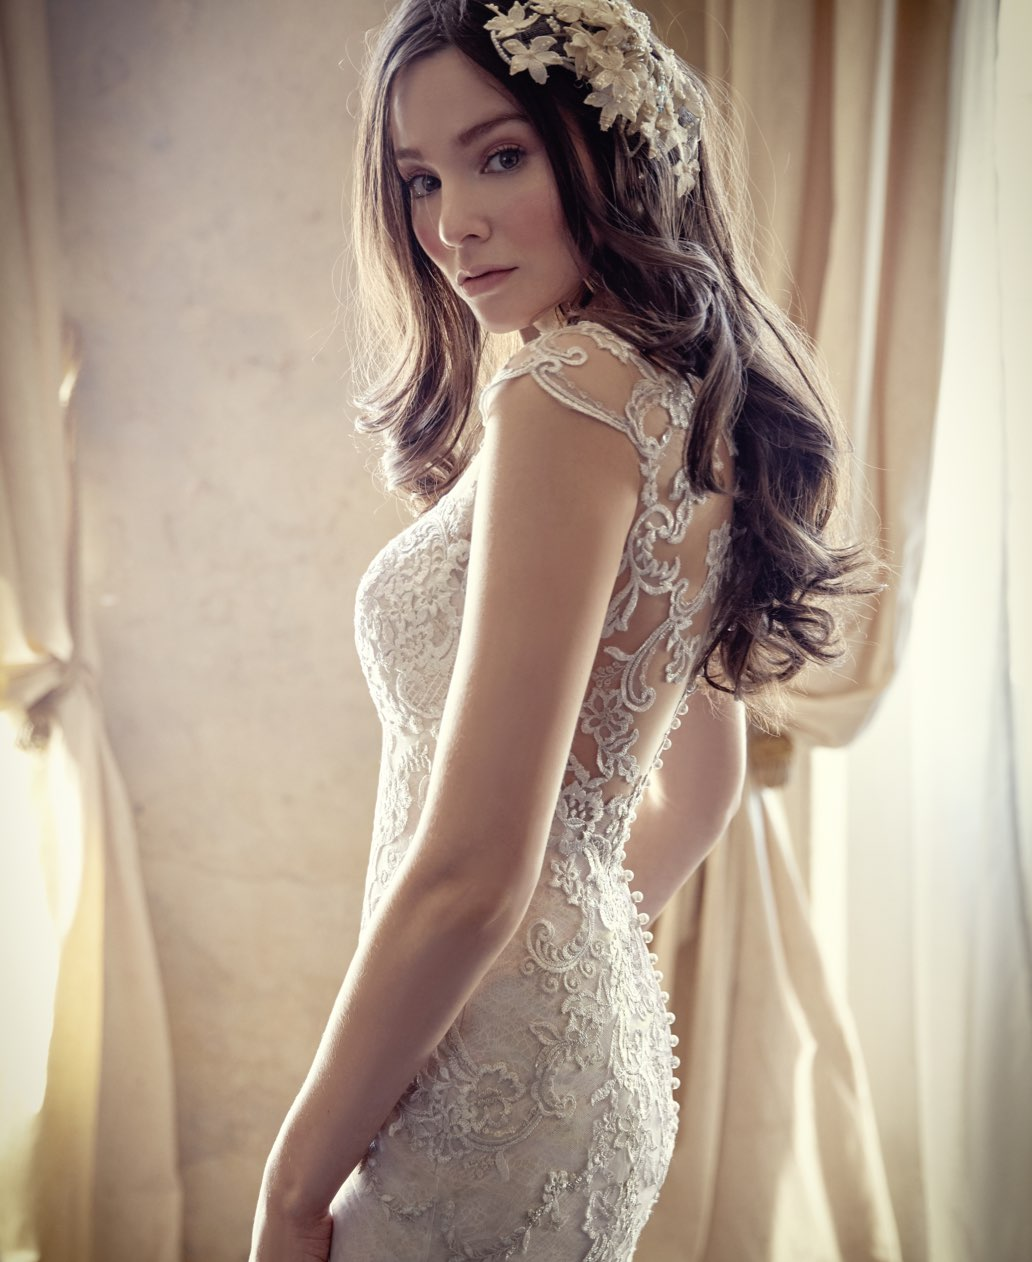 Model wearing white Maggie Sottero Wedding Gown. Desktop